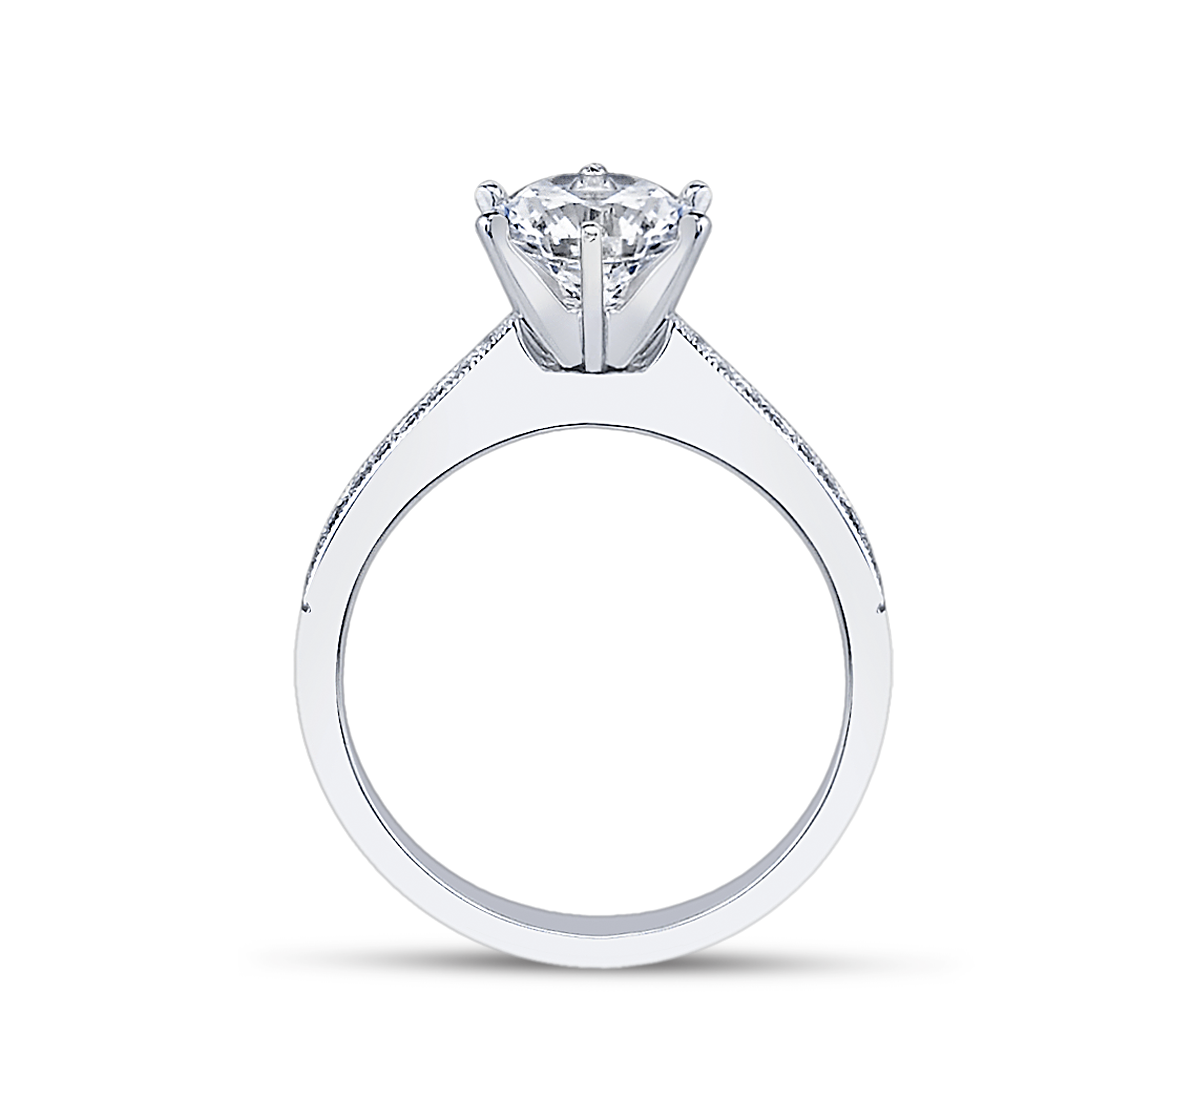 jewelry bandplatinum en wedding high platinum solitaire collection collections ca rings diamond categories cartier diamonds ring